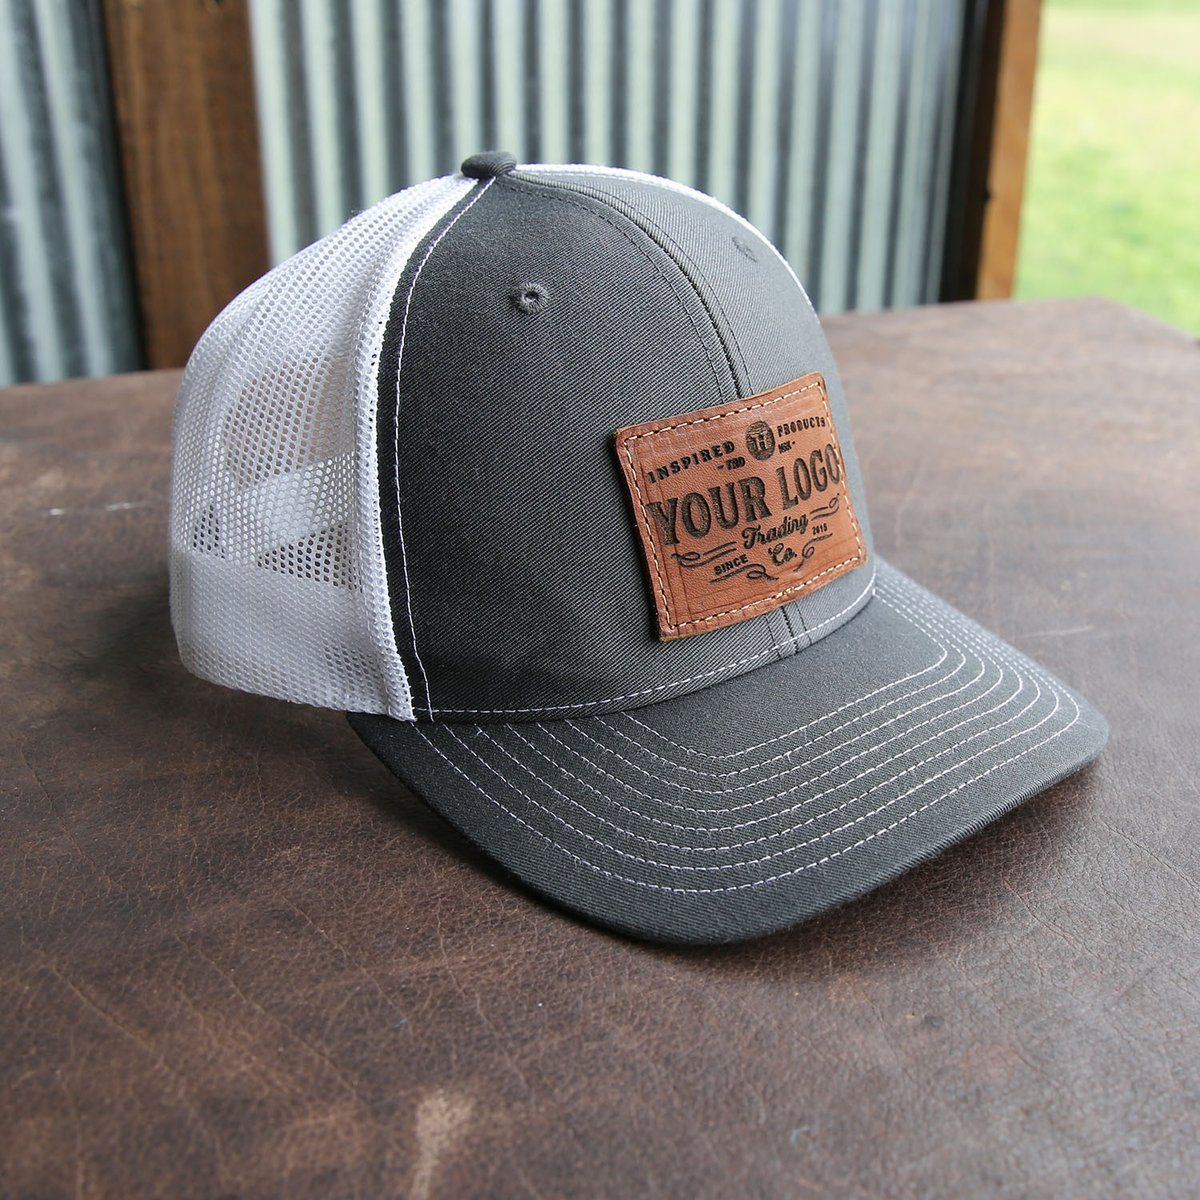 41410c7f241 Custom Leather Patch Hat with YOUR LOGO - Customized